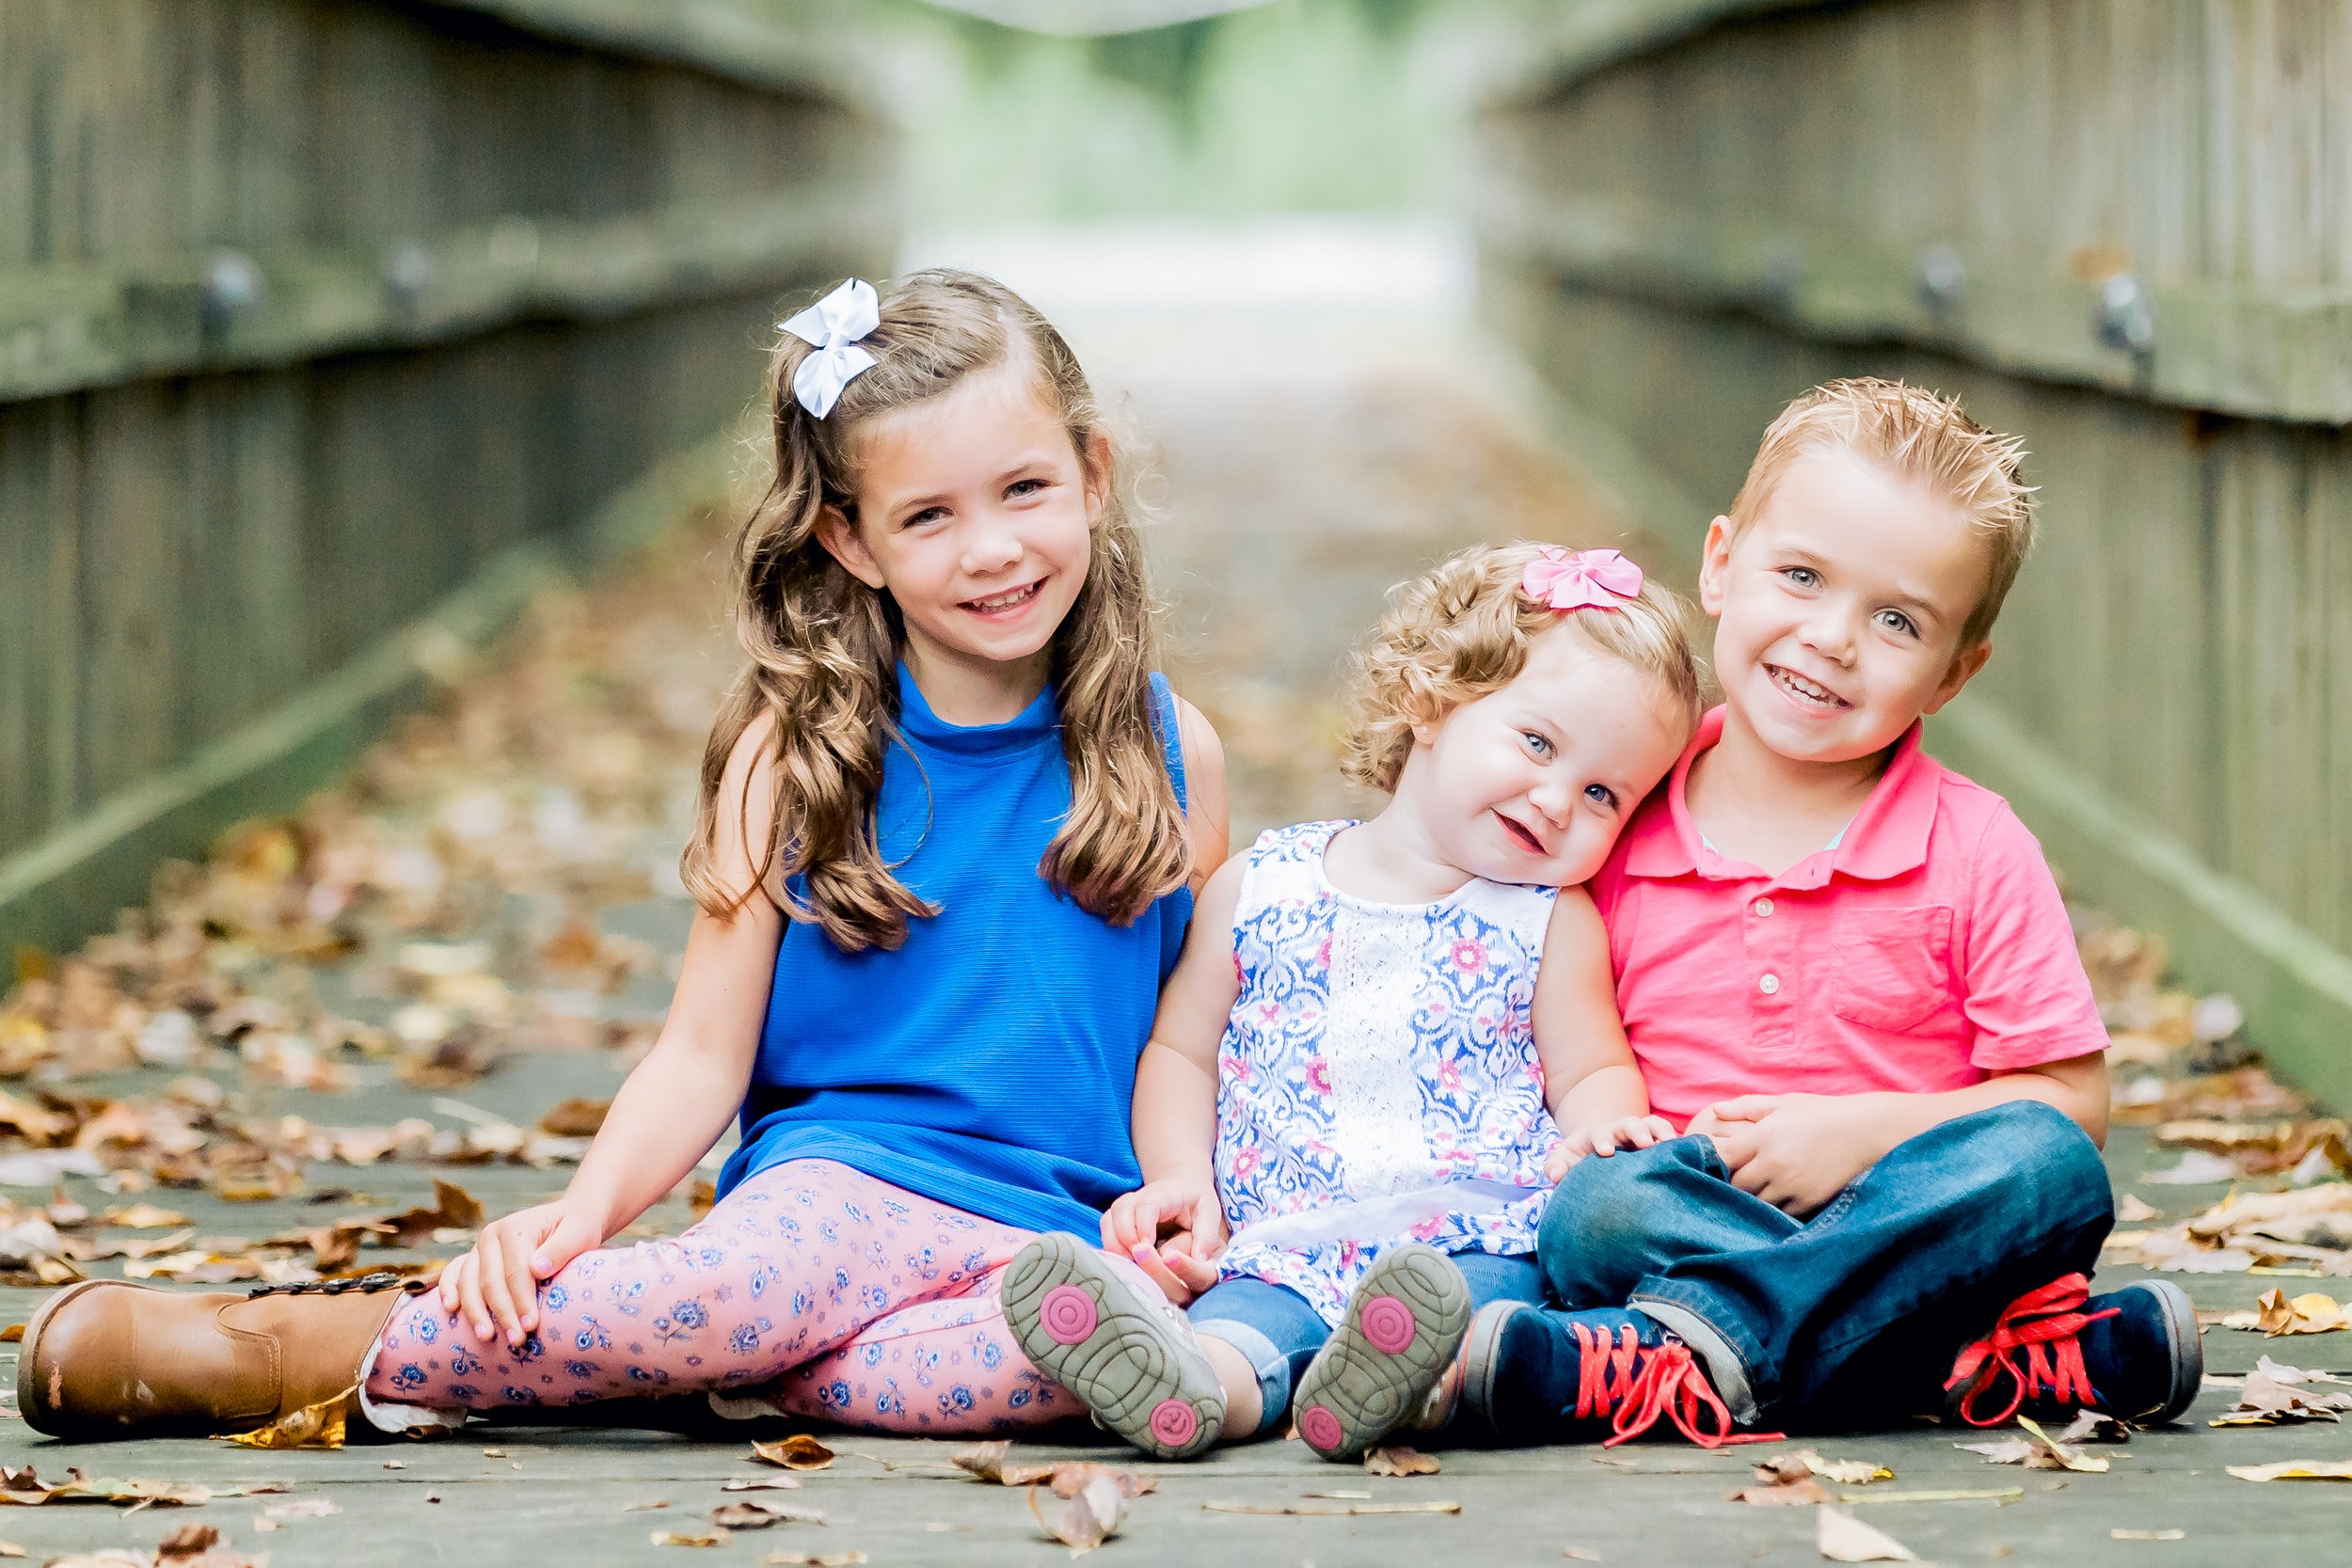 SMP_Kelly ONeil Family_Oct 2017-1.jpg